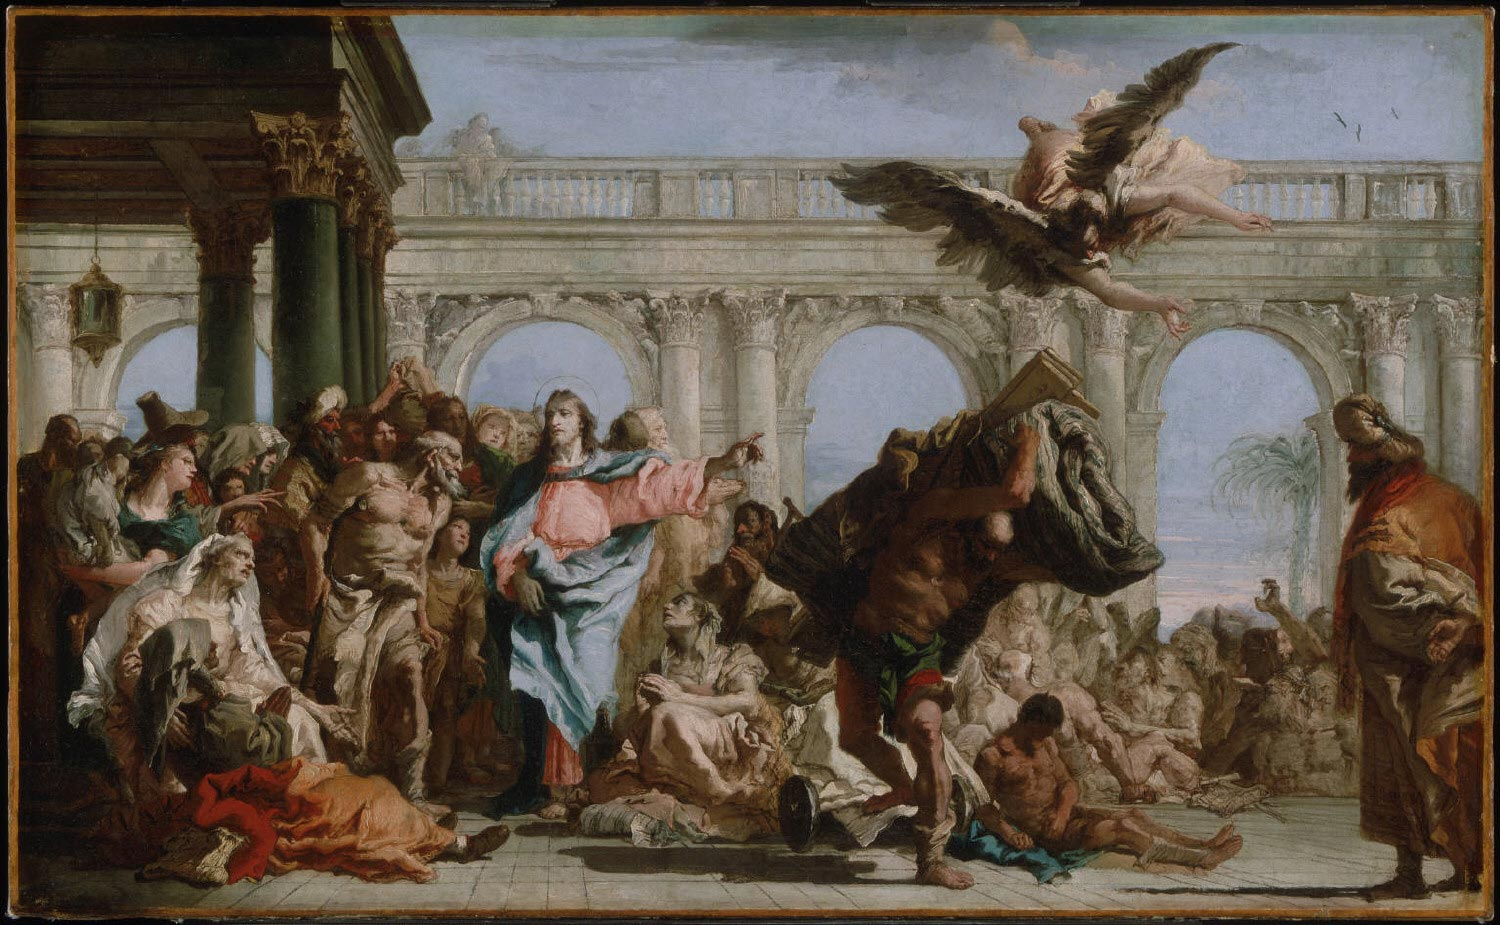 The Miracle of the Pool of Bethesda